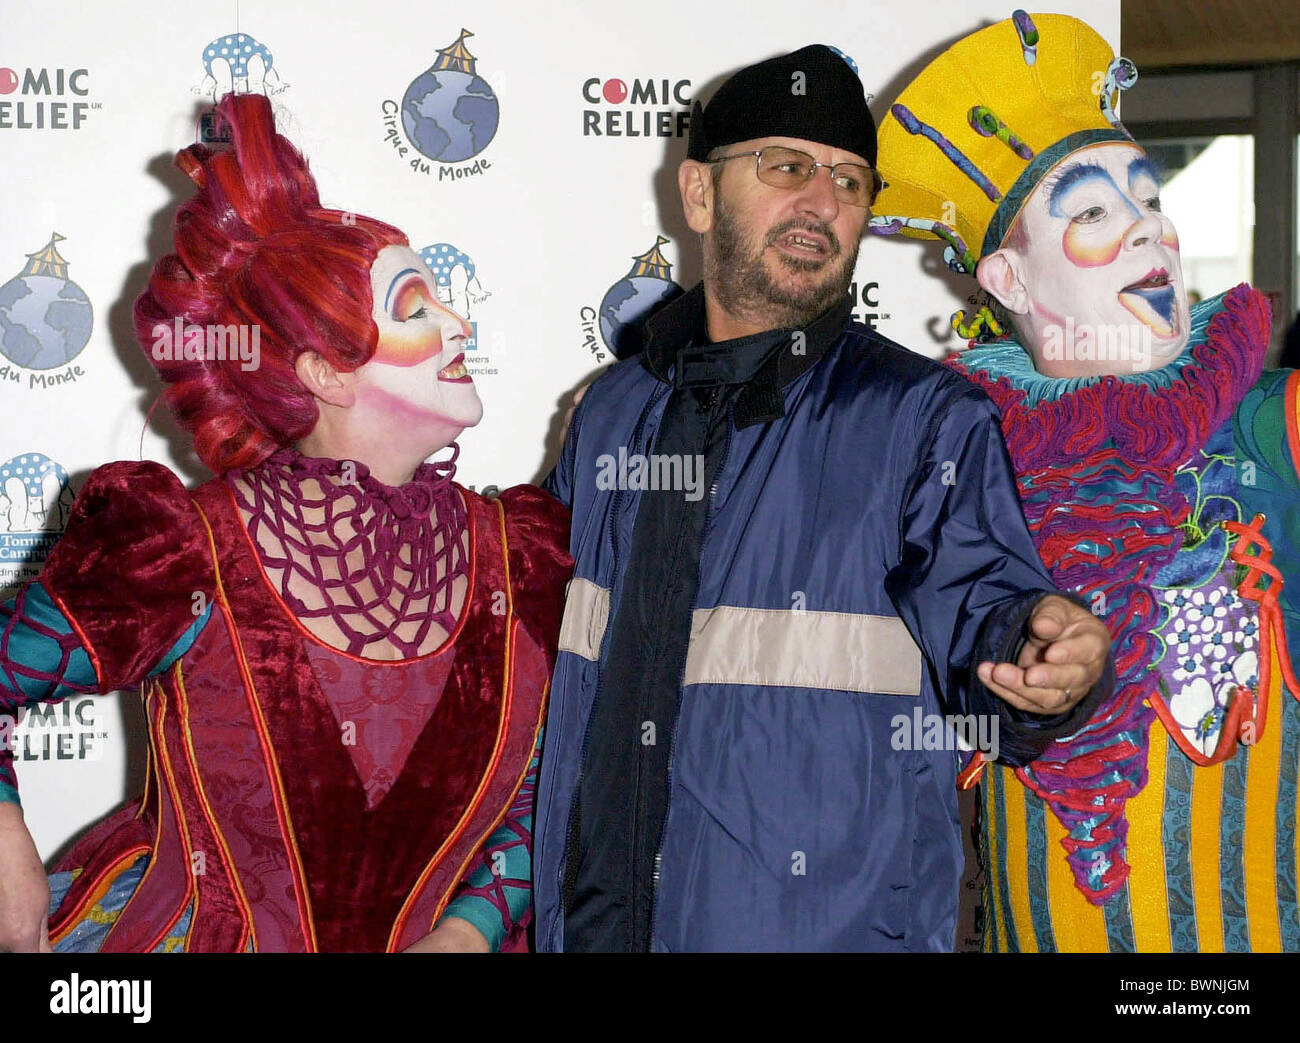 RINGO STARR OF THE BEATLES AT CIRQUE DU SOLEIL CIRCUS IN BATTERSEA PARK, LONDON IN AID OF CHARITY - Stock Image